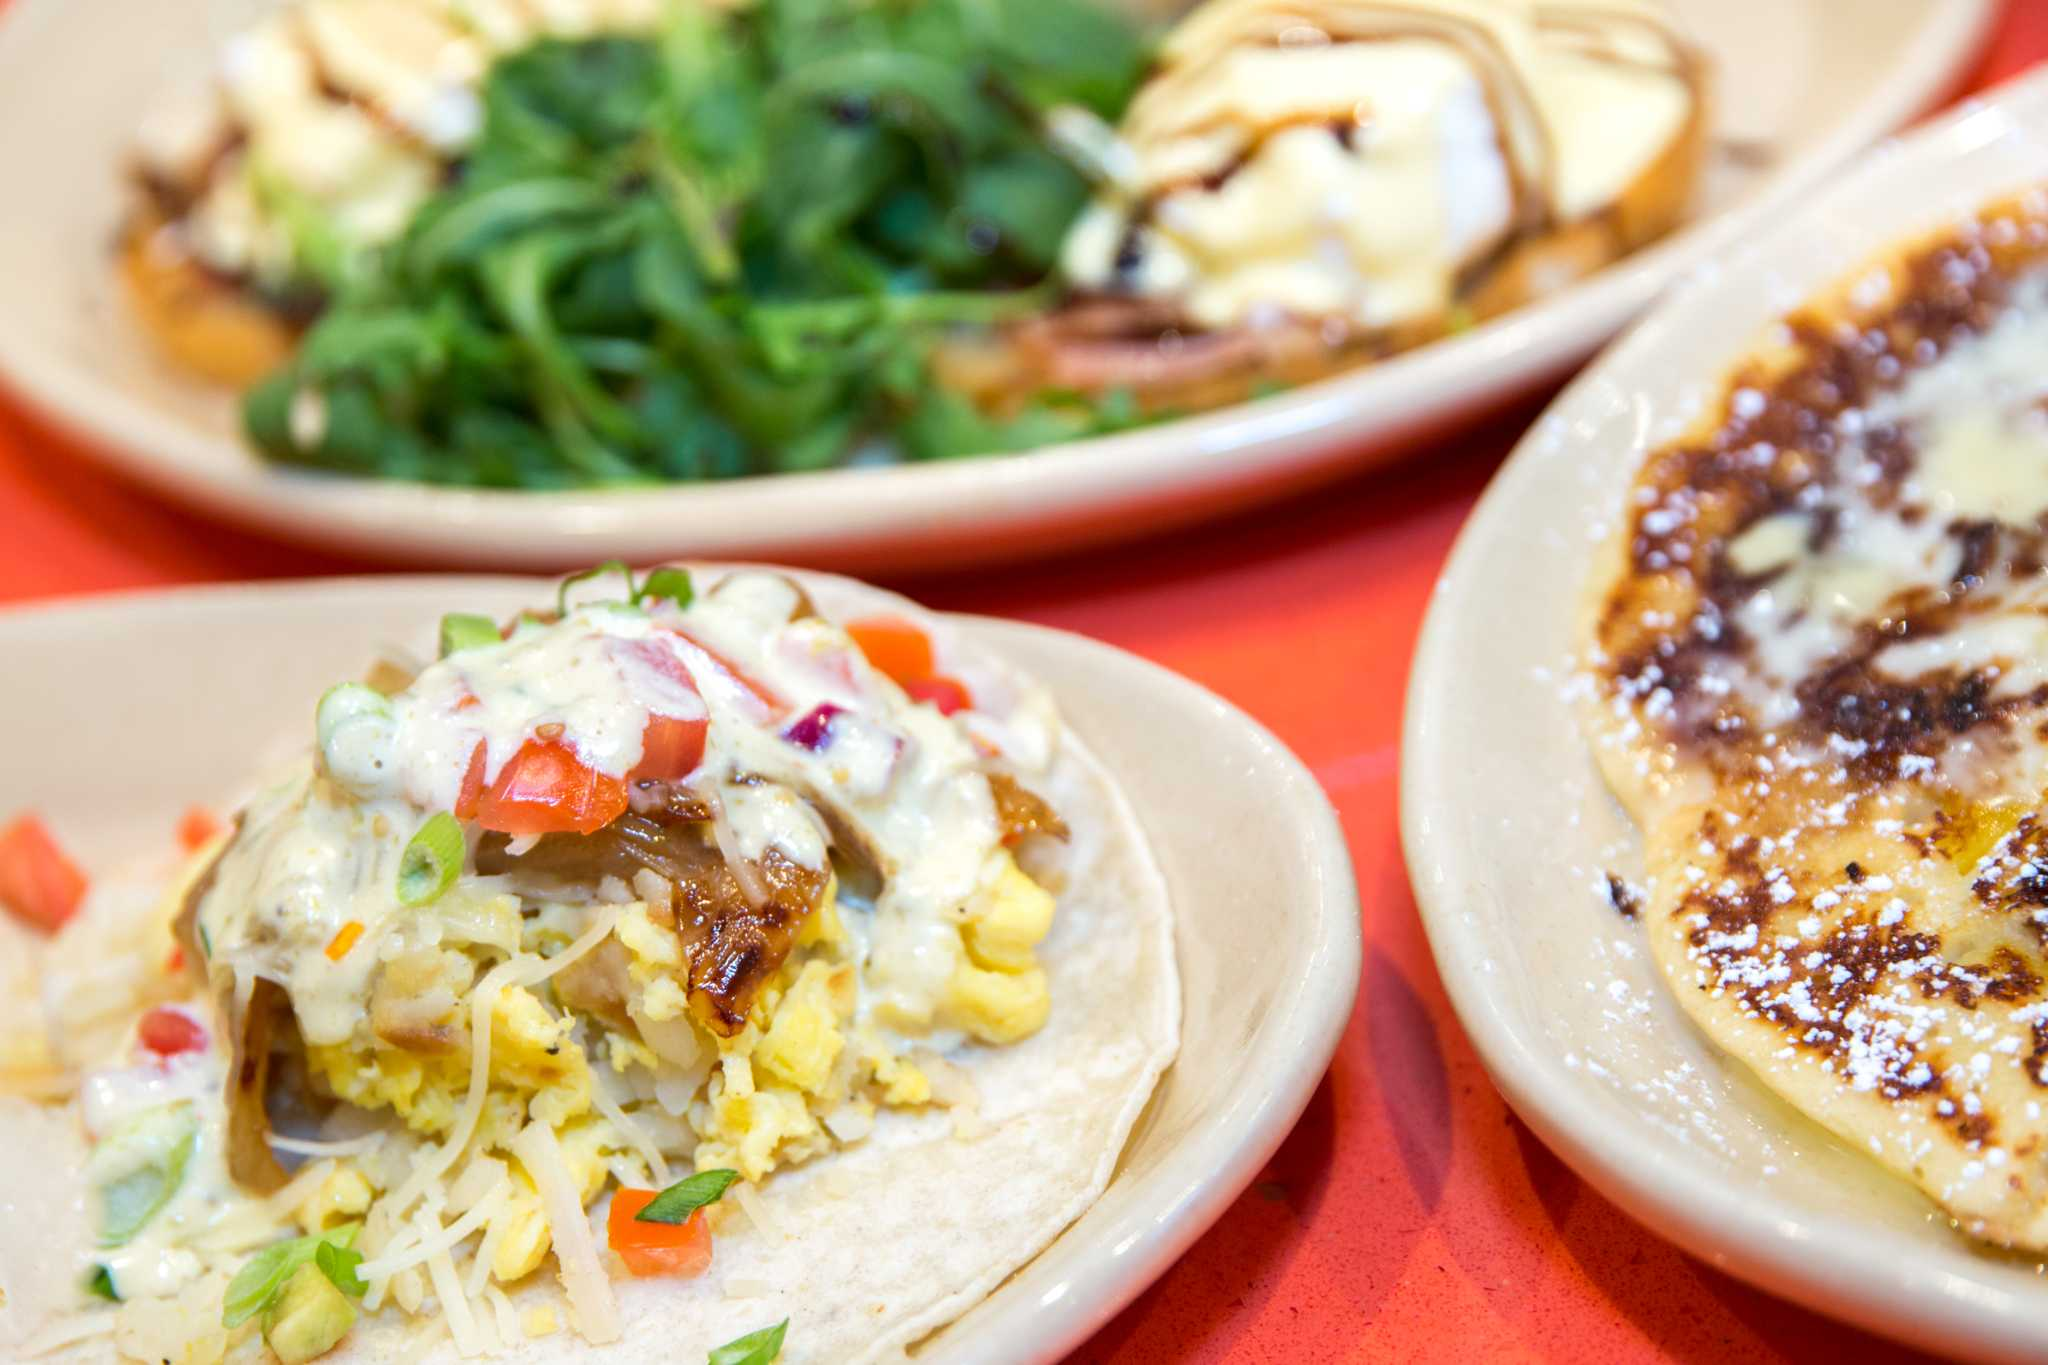 Snooze wakes up The Woodlands with new restaurant opening today